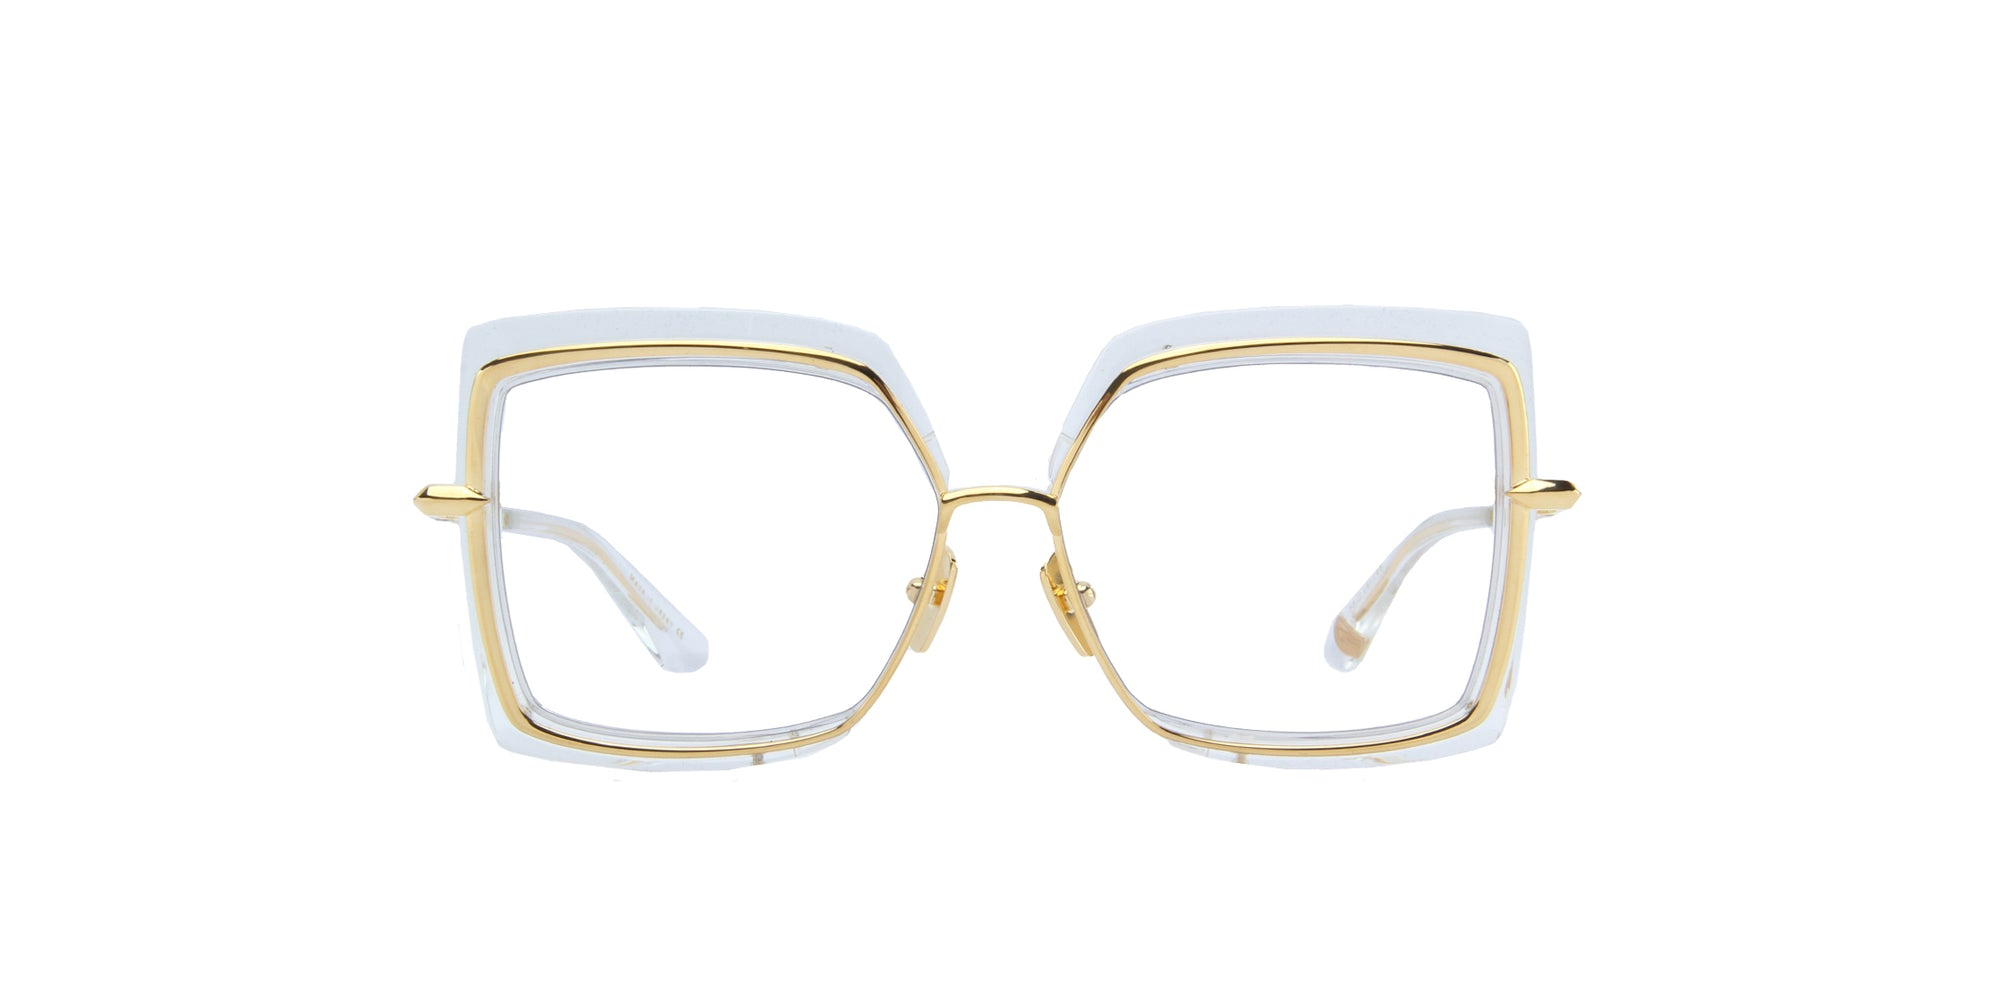 Dita - Narcissus Crystal Clear- Yellow Gold/Clear Square Photochromic Unisex Sunglasses - 58mm